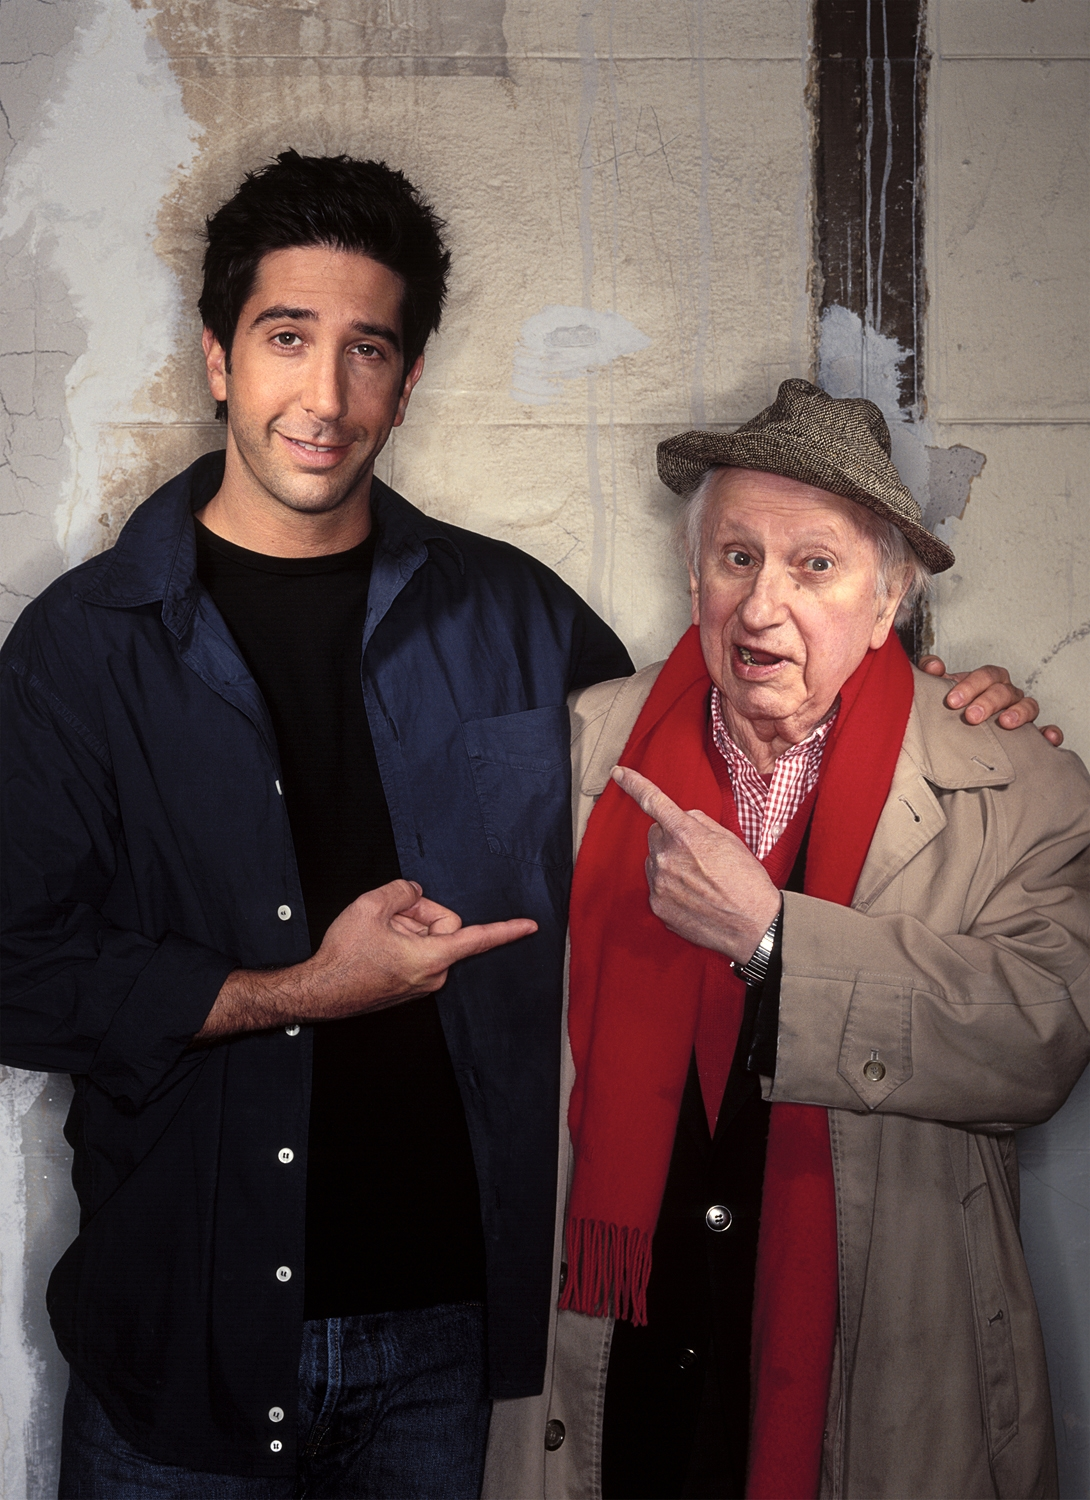 David Schwimmer, Actor and Director / Studs Turkel, Actor and Writer